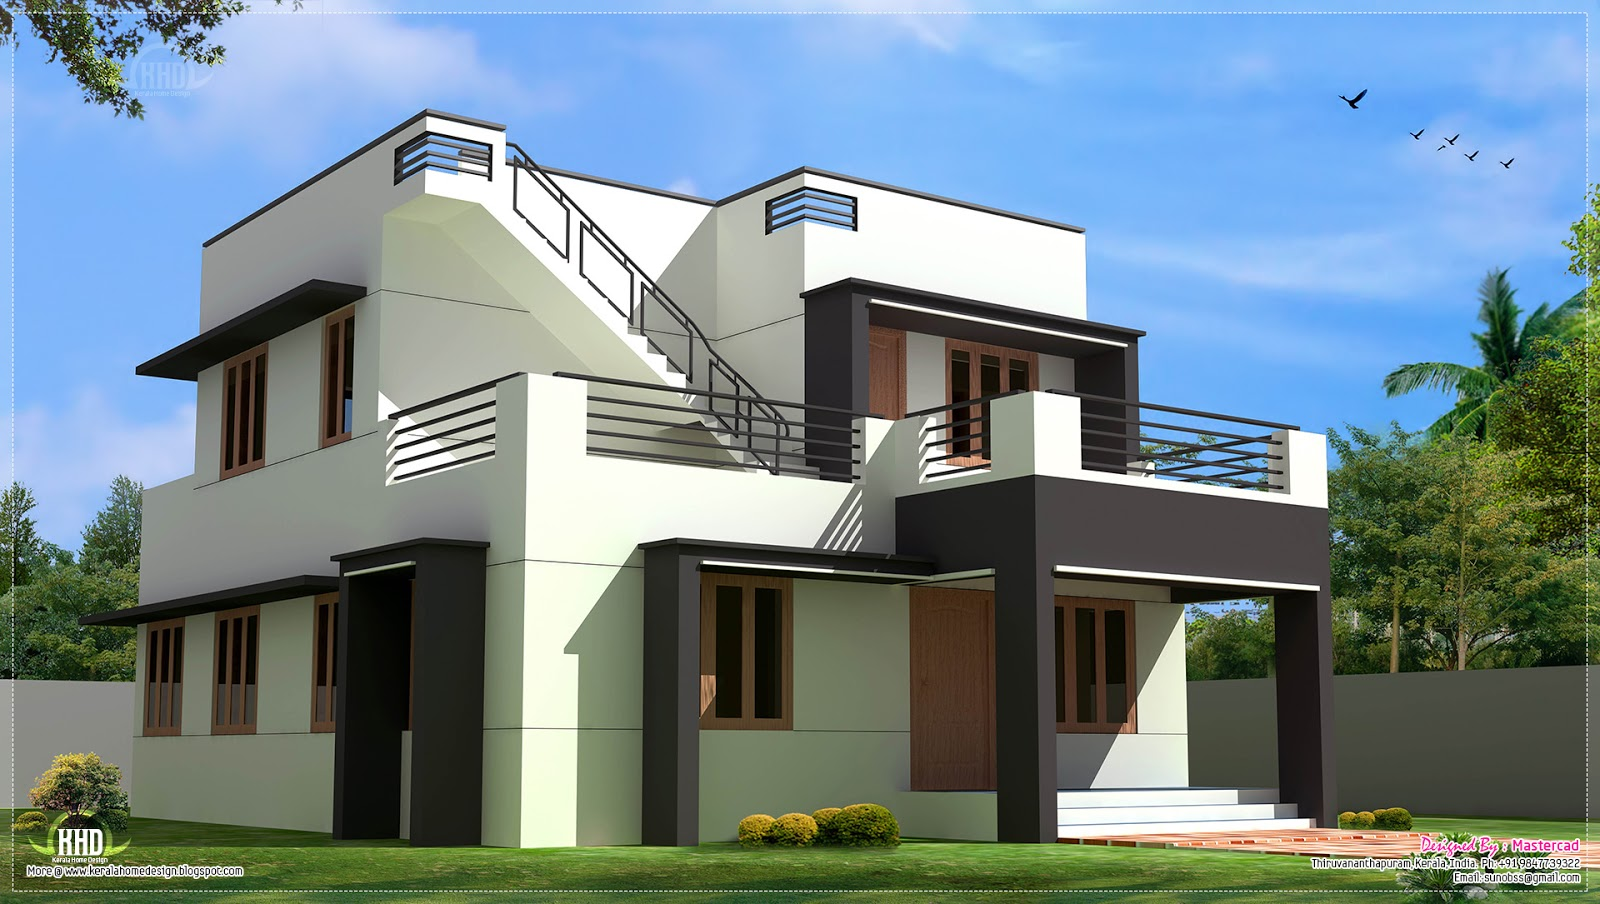 Modern house design in 1700 kerala home design for Modern square house plans